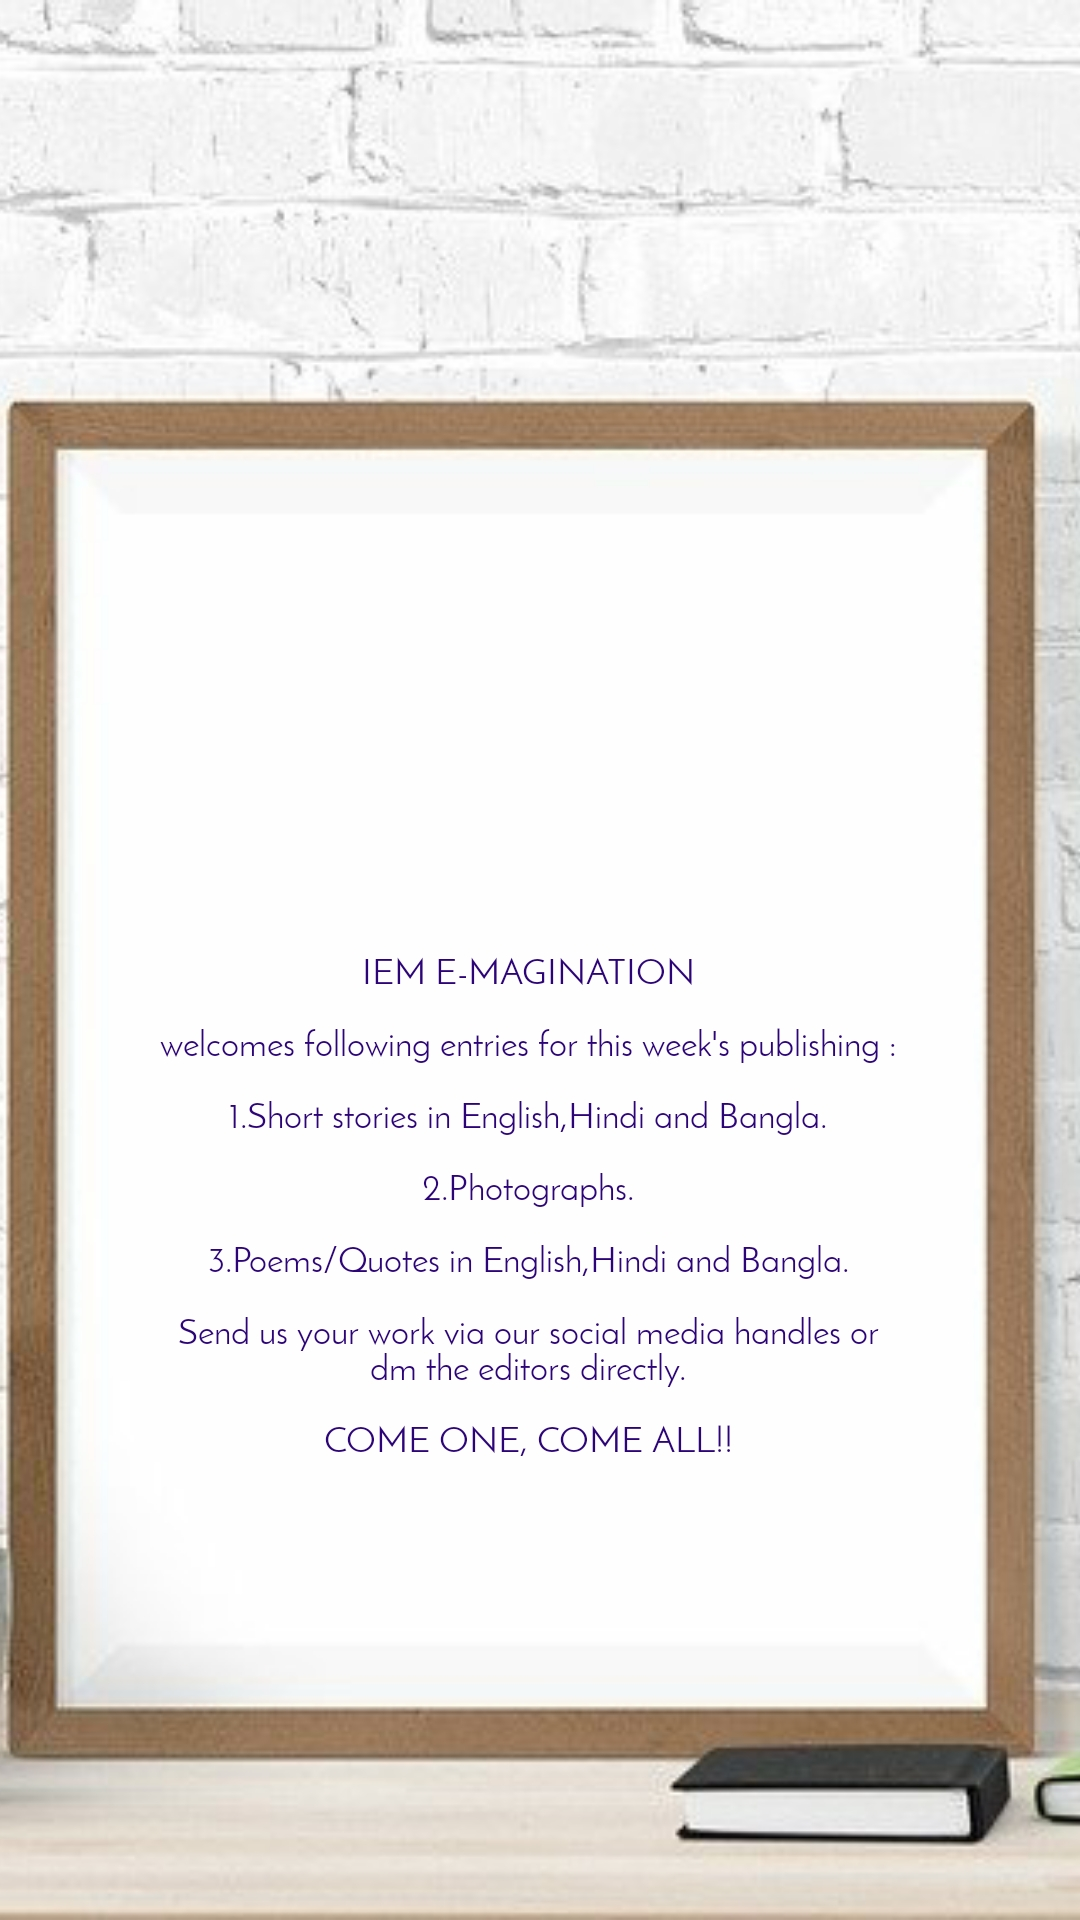 IEM E-MAGINATION  welcomes following entries for this week's publishing :  1.Short stories in English,Hindi and Bangla.  2.Photographs.  3.Poems/Quotes in English,Hindi and Bangla.  Send us your work via our social media handles or dm the editors directly.  COME ONE, COME ALL!!